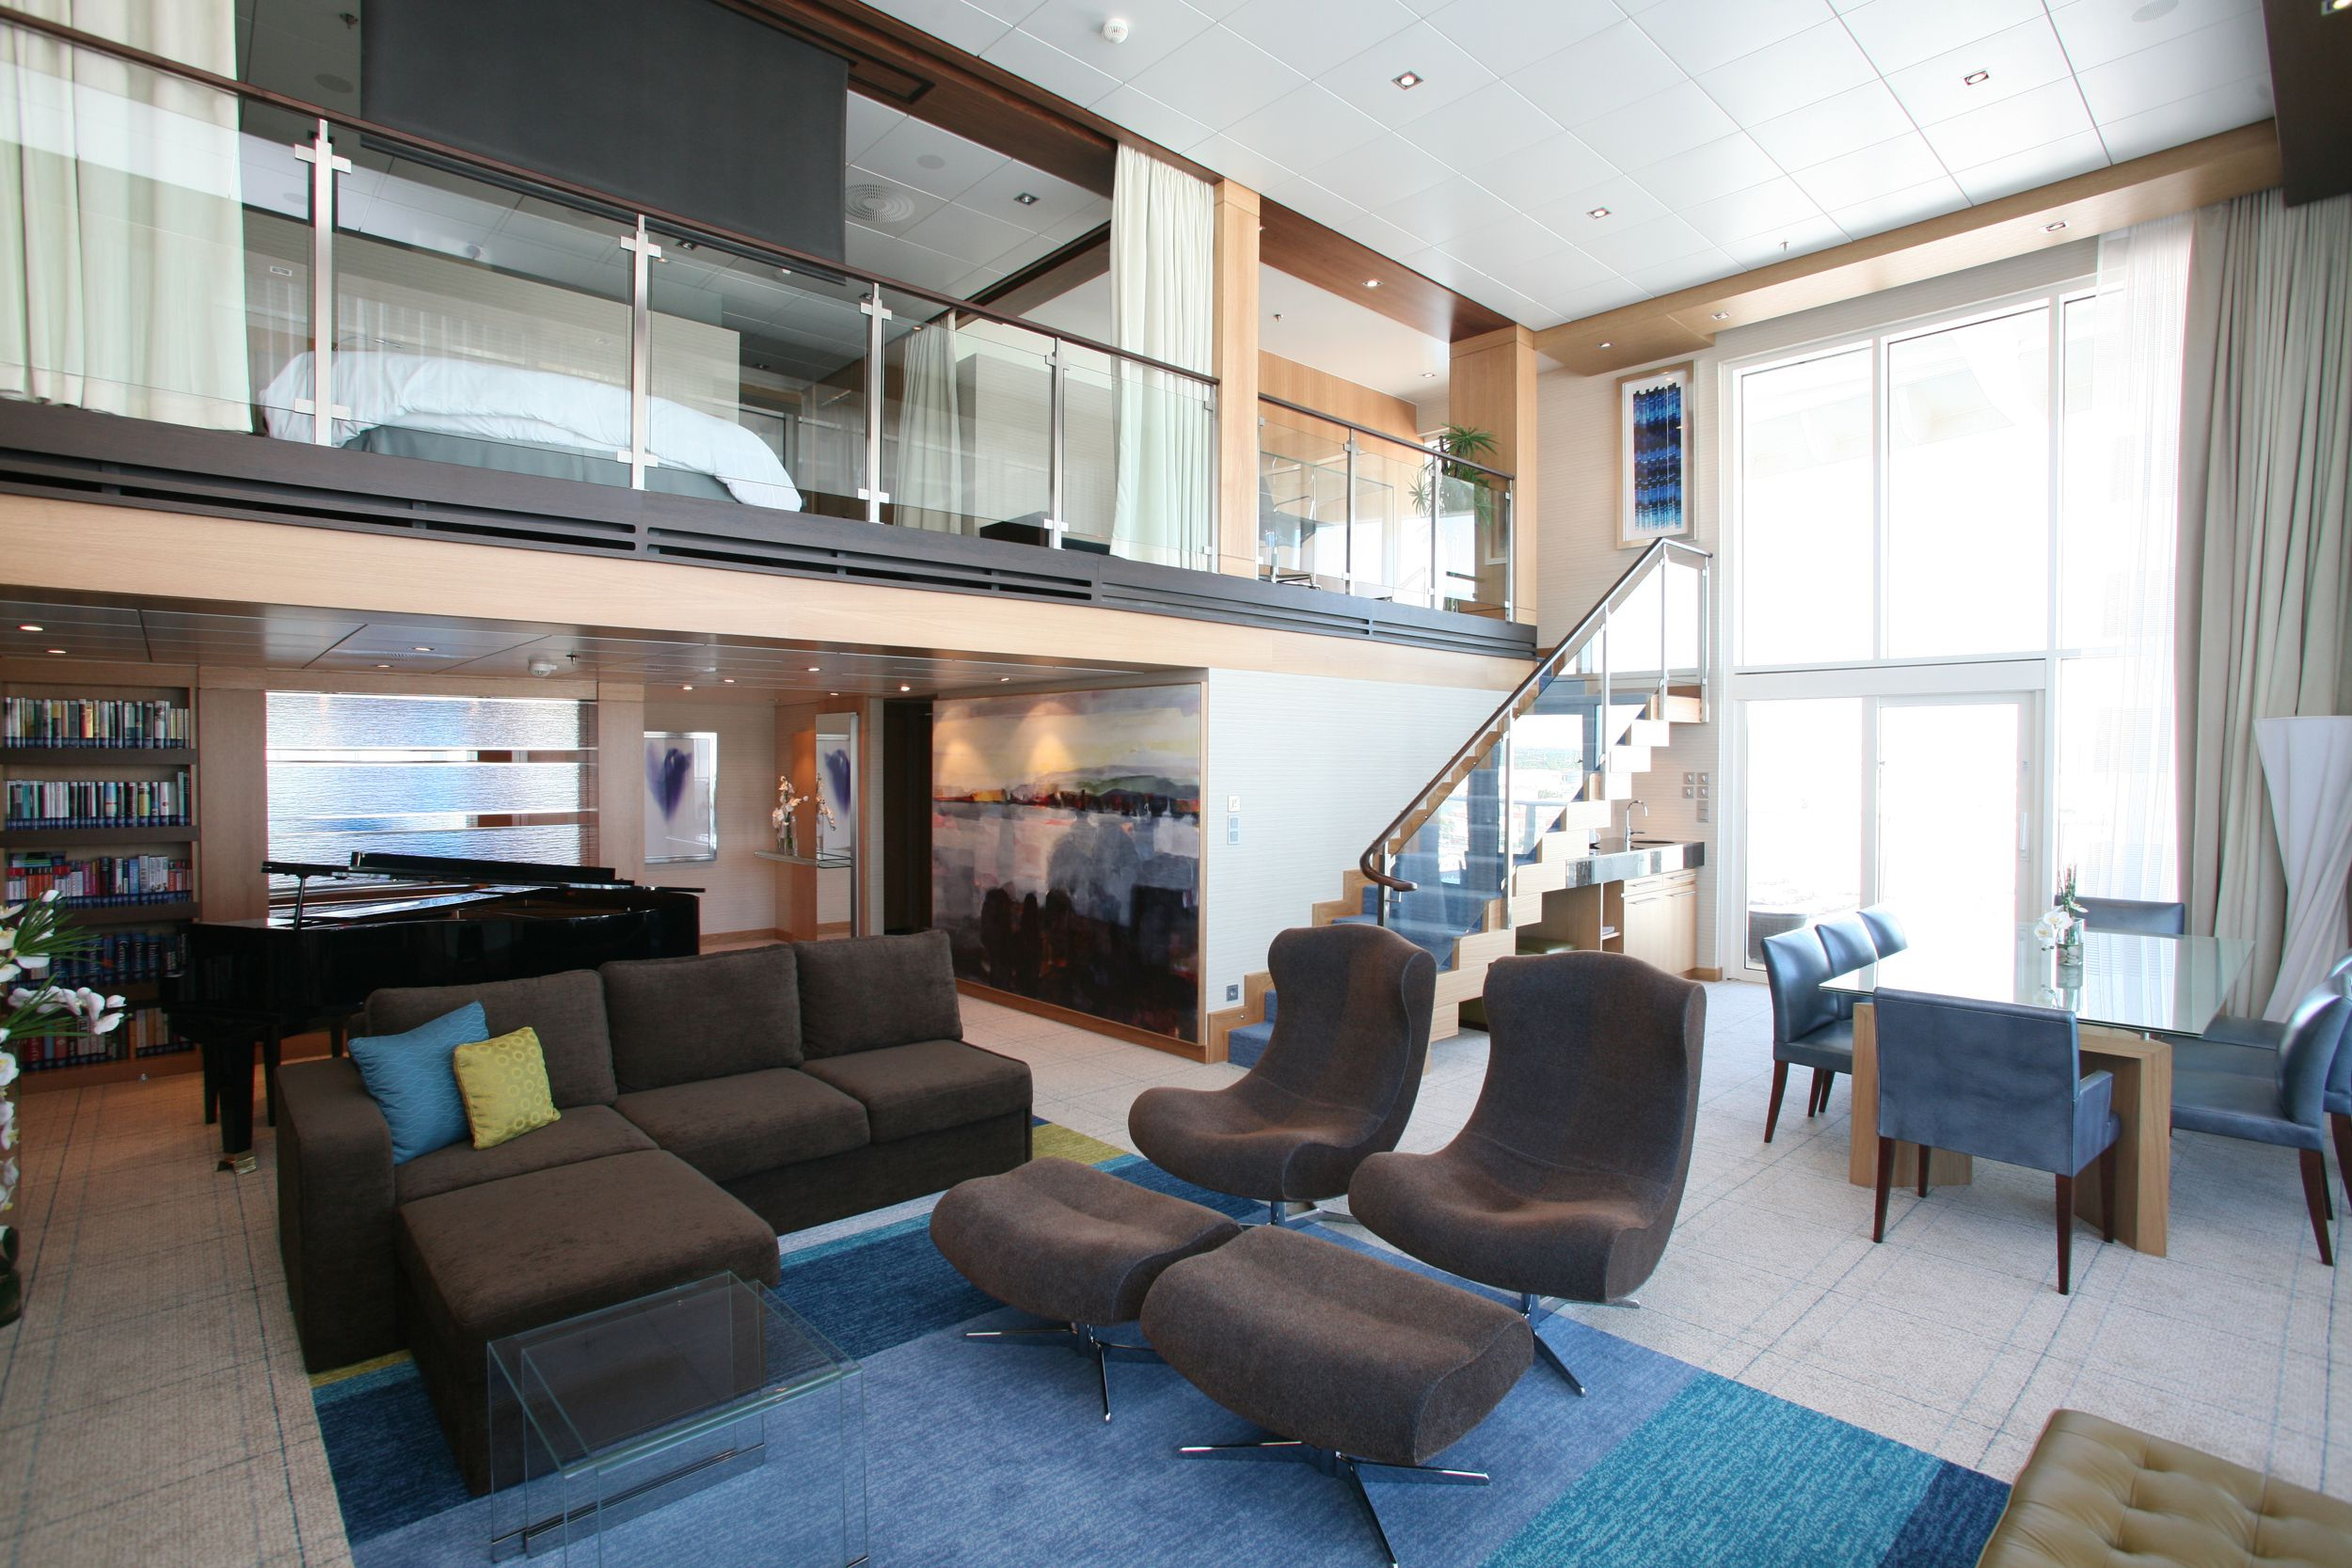 Allure Of The Seas Cabins And Suites